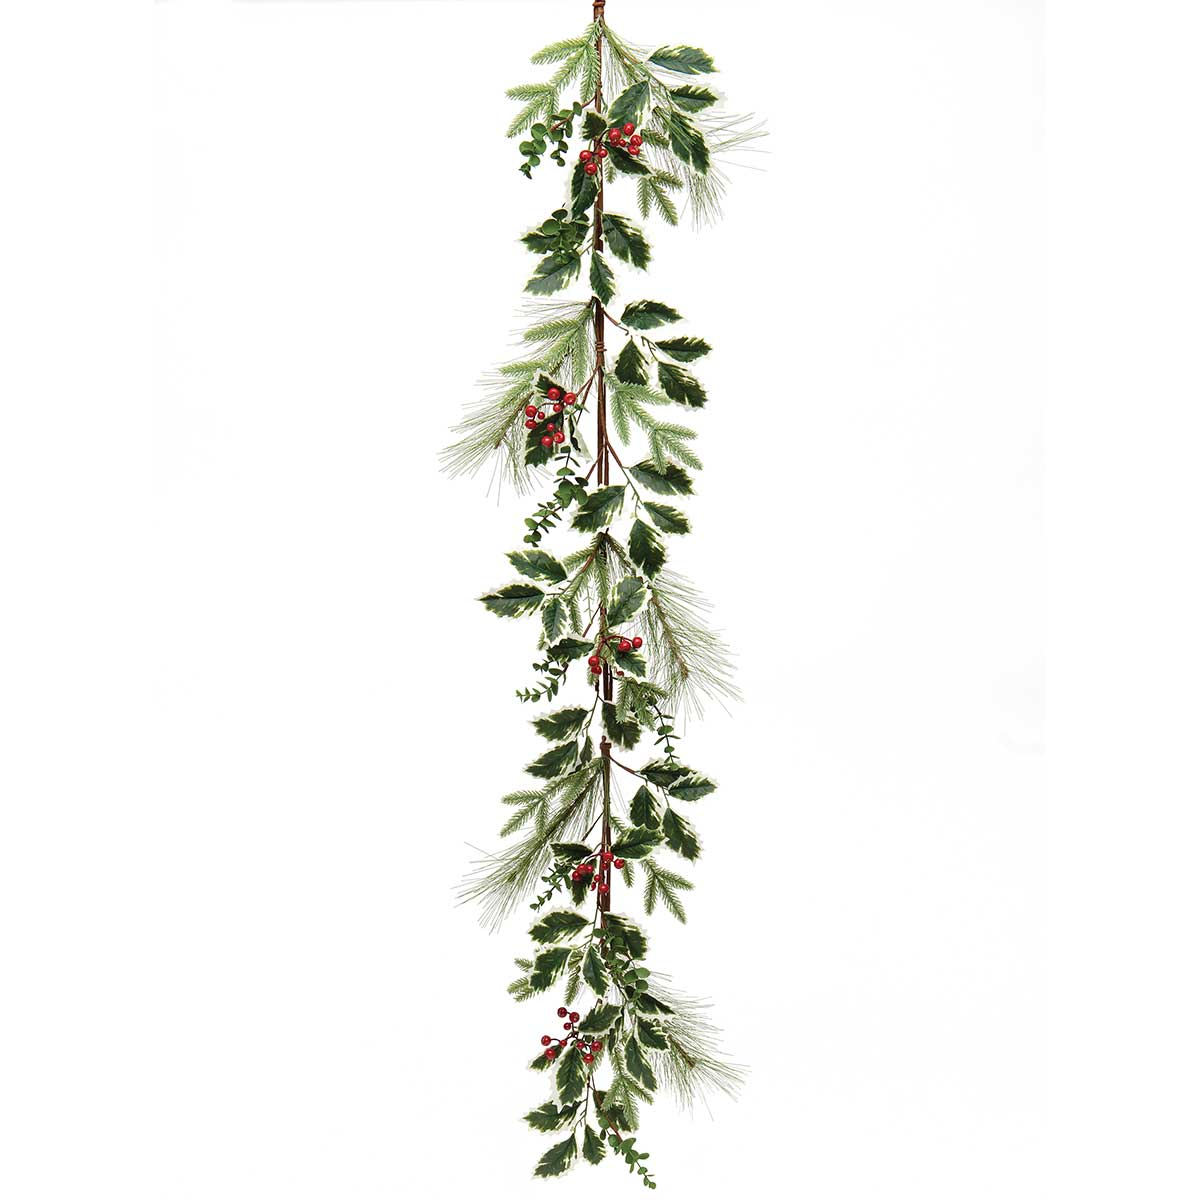 FRESH VARIEGATED HOLLY GARLAND WITH PINE,RED BERRIES,EUCALYPTUS